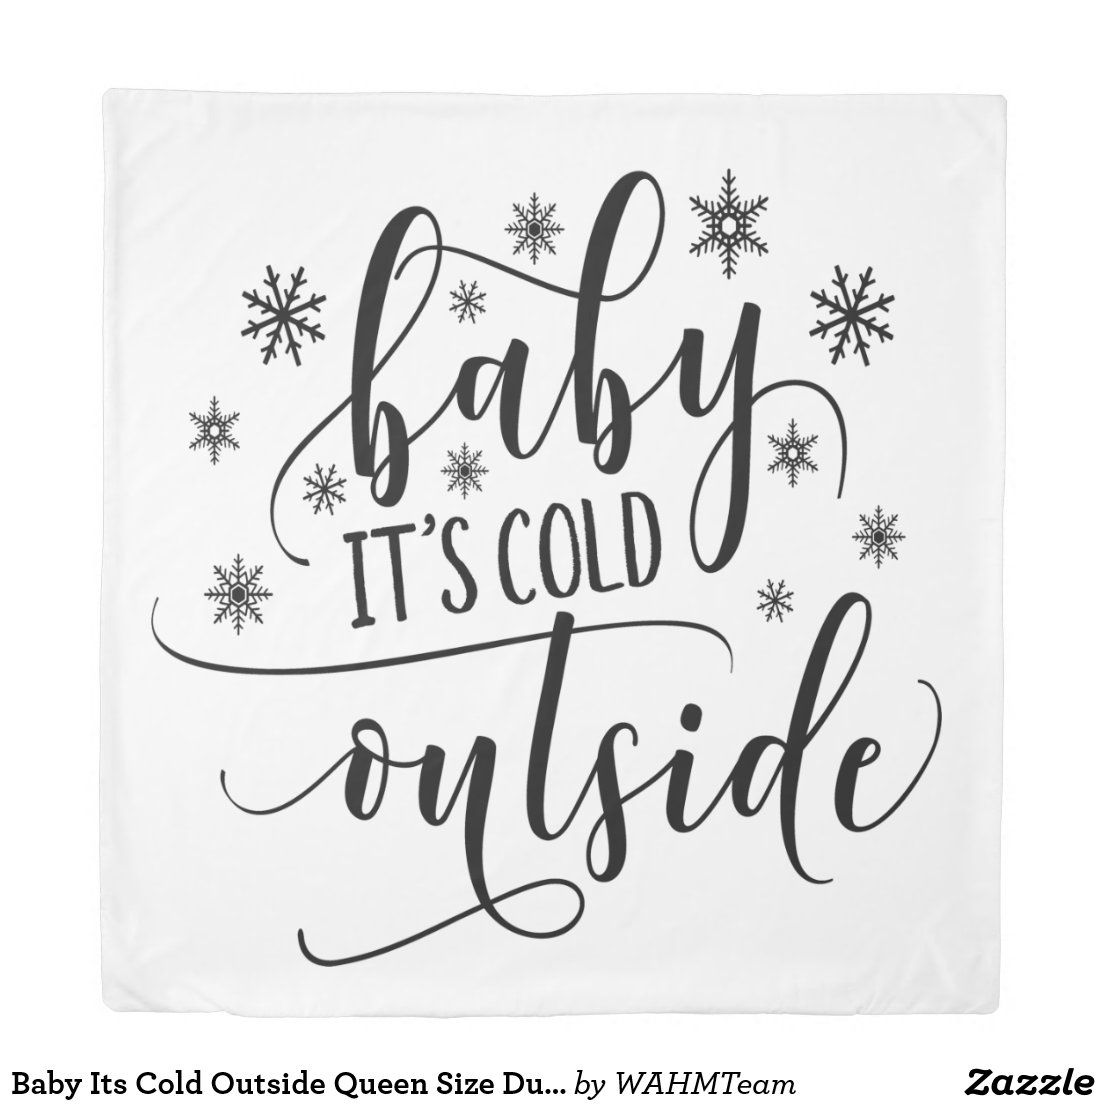 Baby Its Cold Outside Queen Size Duvet Cover Bed Zazzle Com In 2021 Baby Cold Metallic Tattoo Temporary Rubber Stamps Diy